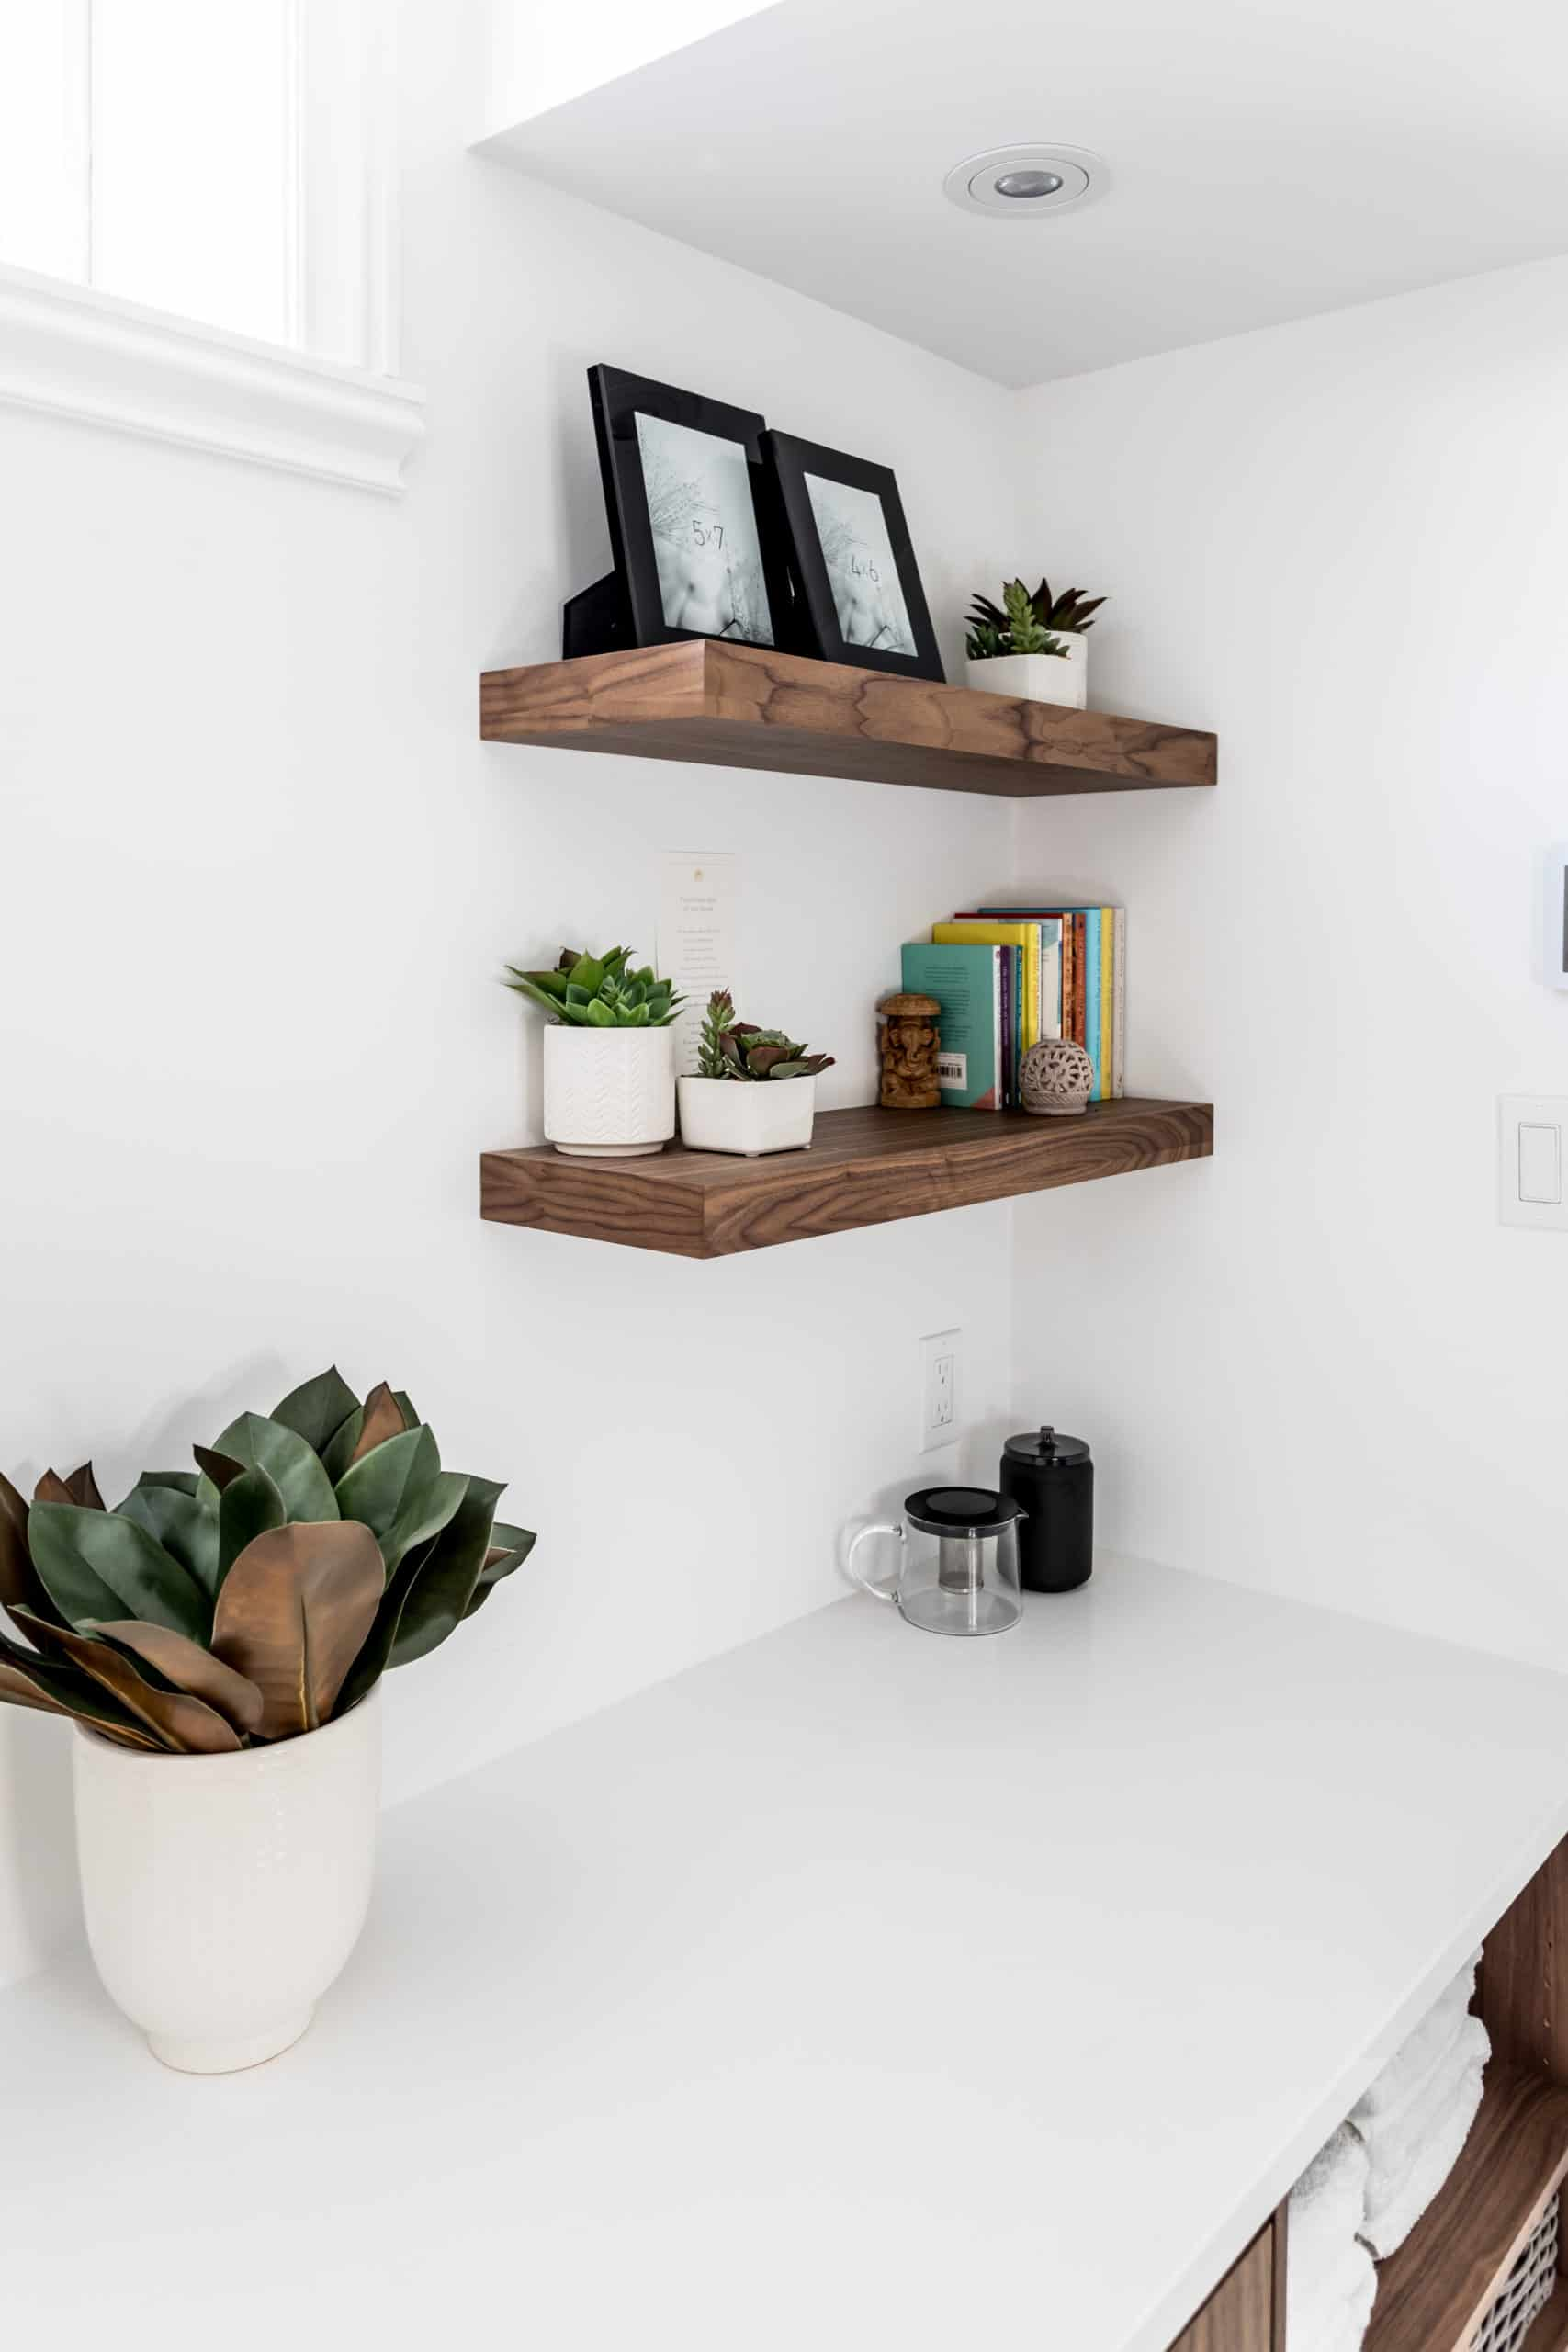 White countertop with wooden shelves in the corner